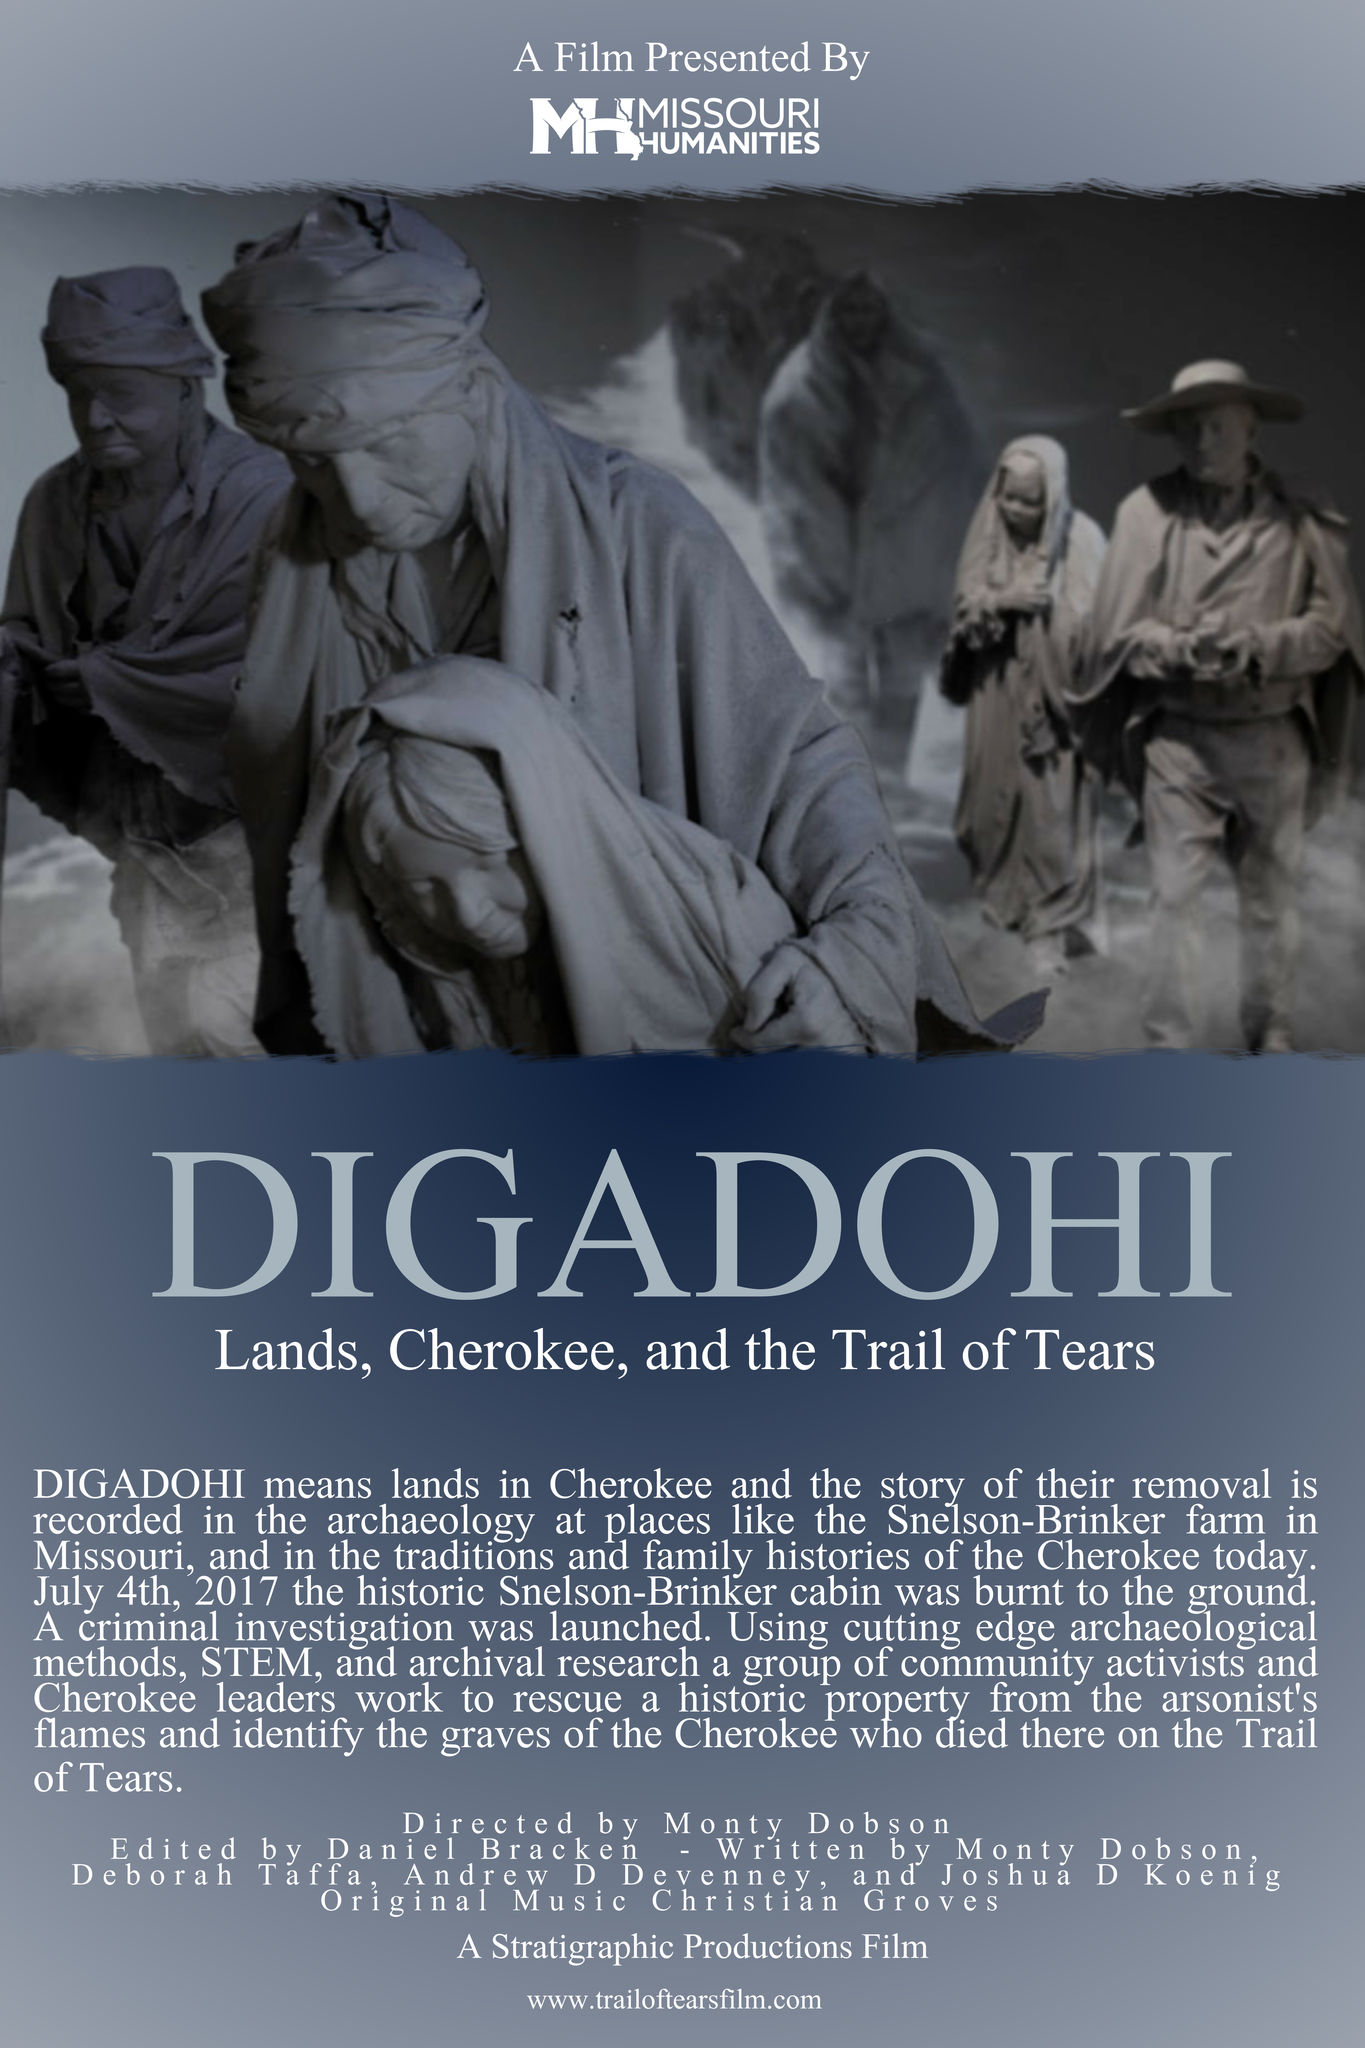 DIGADOHI: Lands, Cherokee and the Trail of Tears